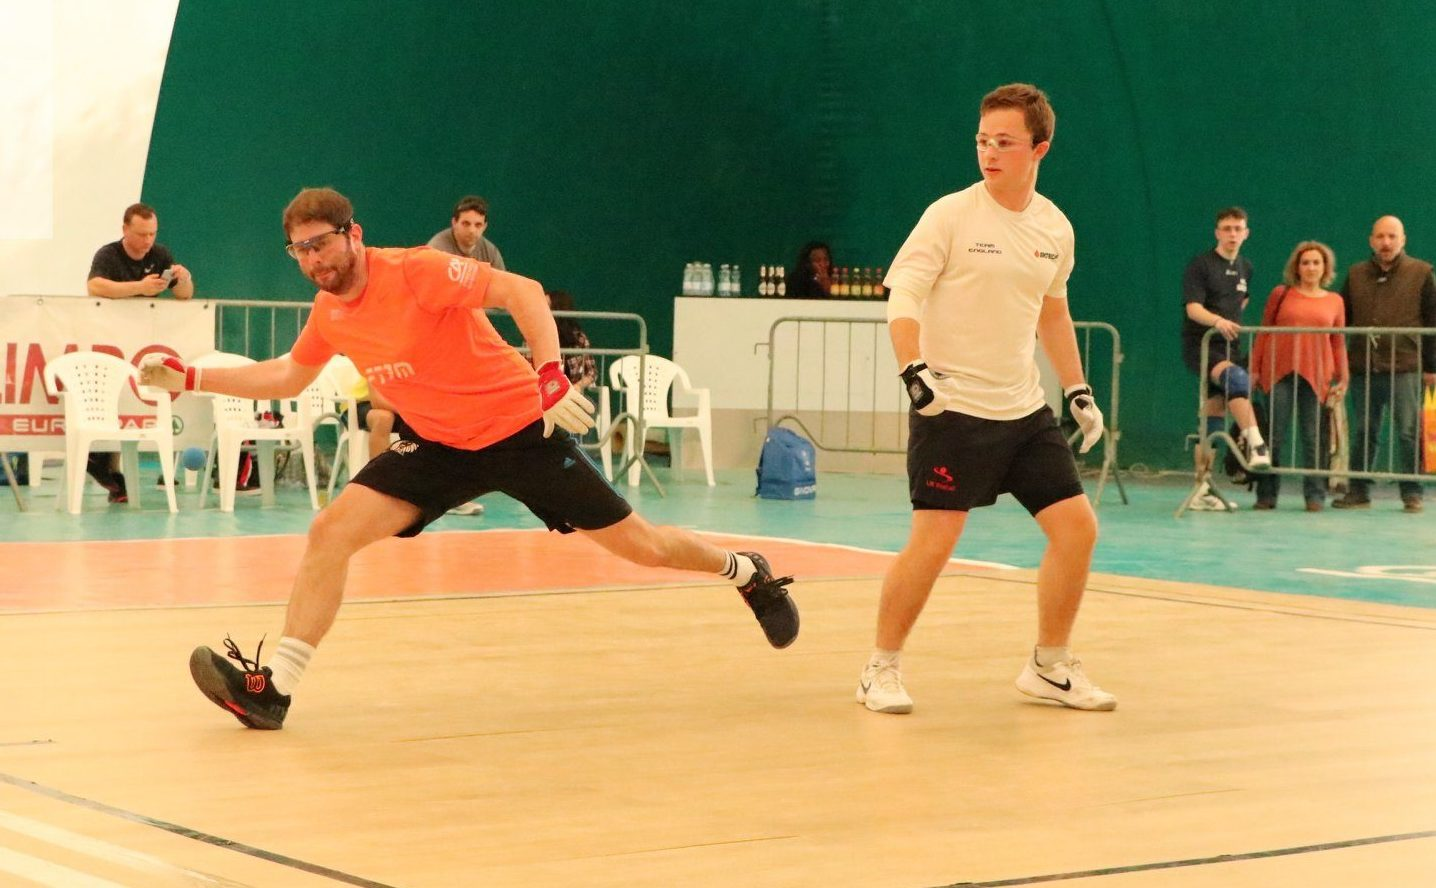 Brits make their mark at Italian Open in Palermo